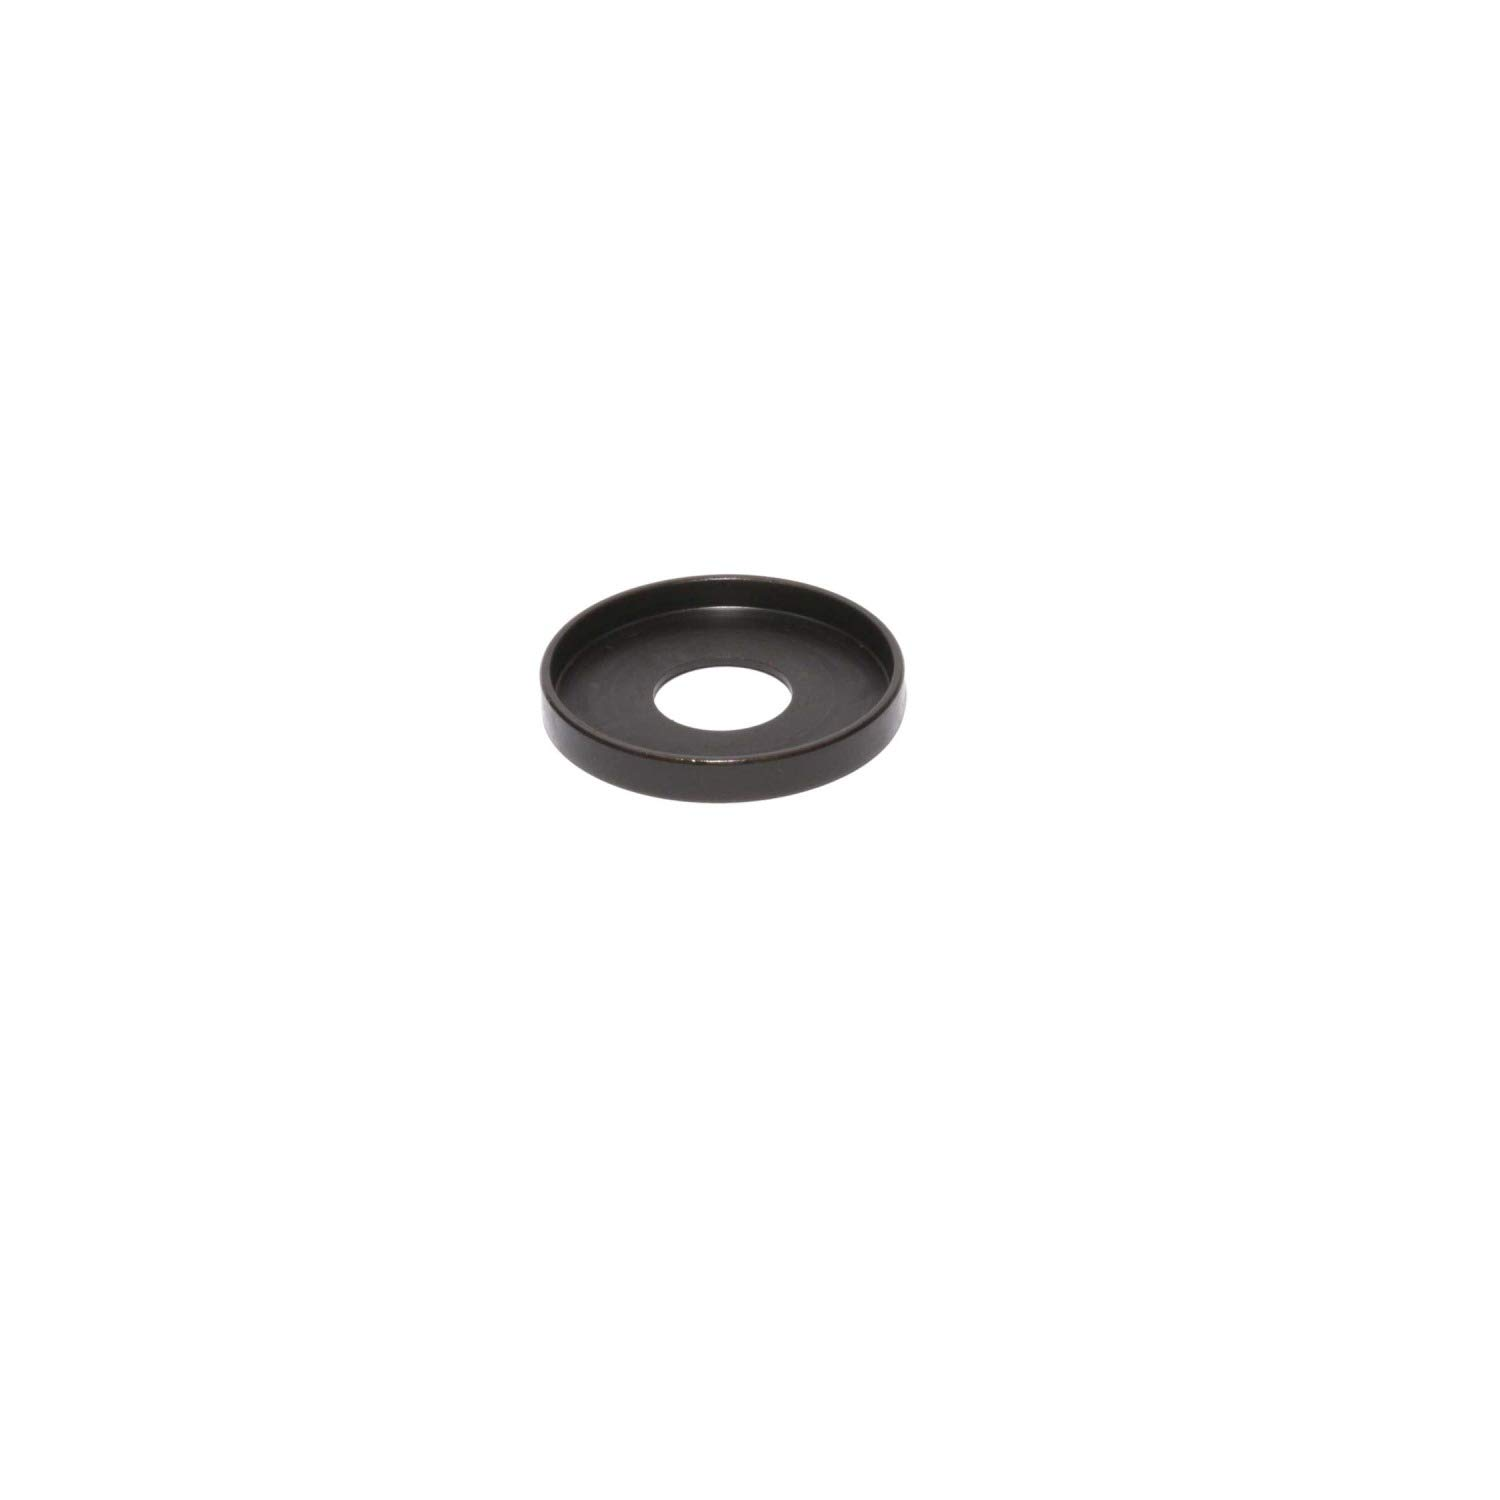 4769-1 For 1.500 Spring COMP Cams 4769-1 Spring Seat Cup